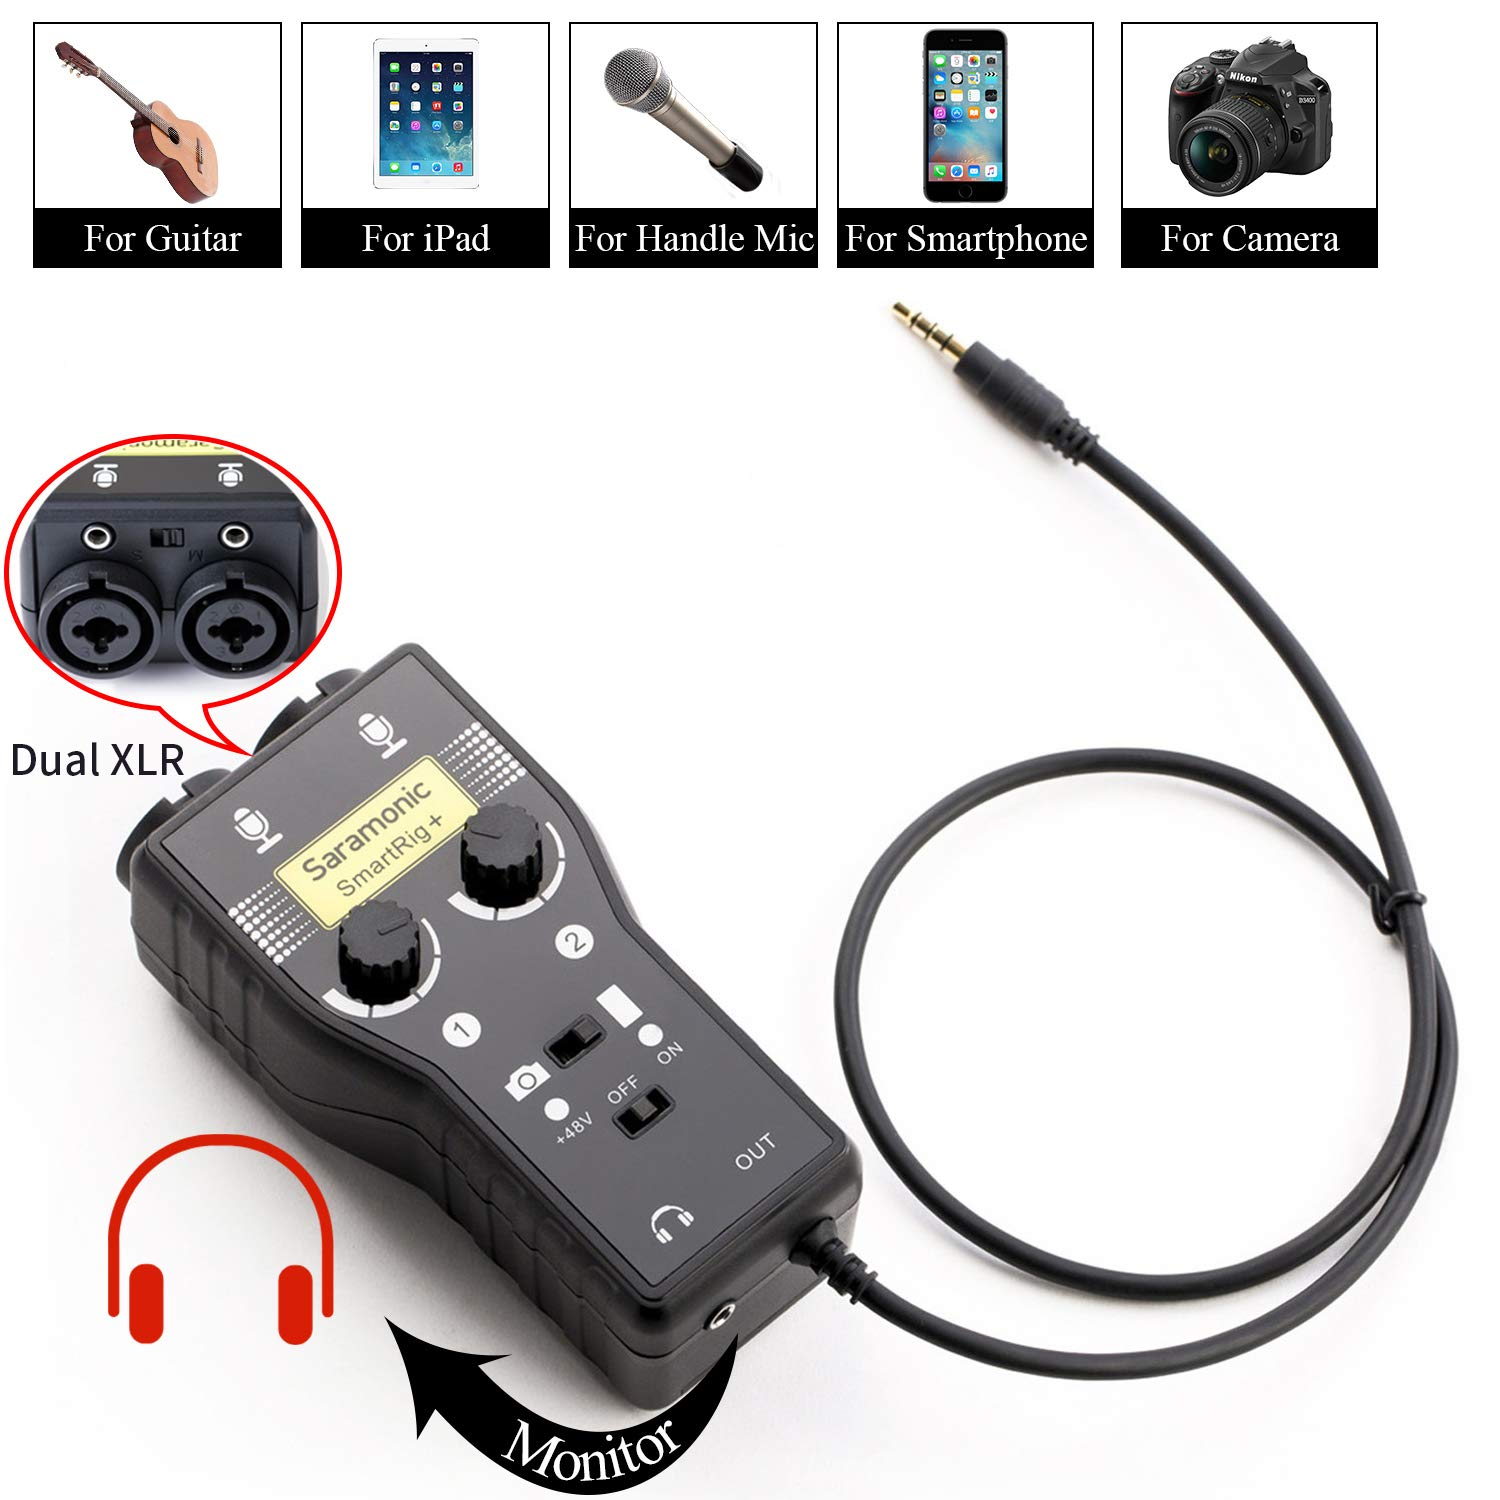 Saramonic SmartRig+ 2-Channel XLR/3.5mm Karaoke Microphone Audio Mixer with Preamp & Guitar Interface for DSLR Cameras Camcorder iPhone X 8 8x 7 7 plus iPad iPod Android Smartphone Guitar by Saramonic